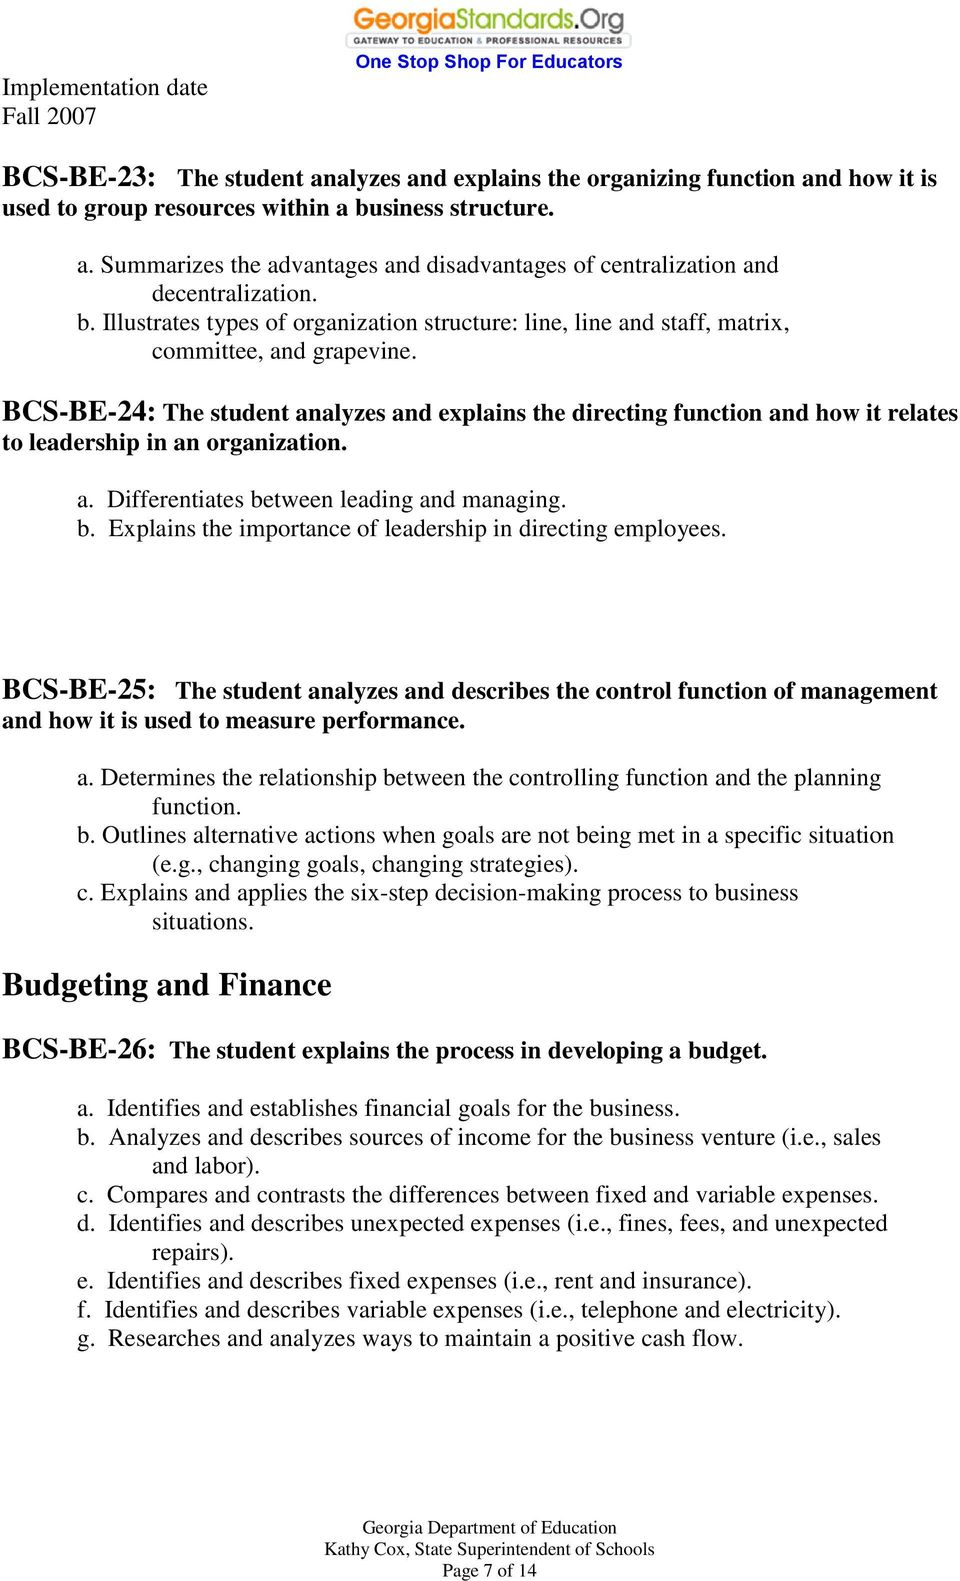 BCS-BE-24: The student analyzes and explains the directing function and how it relates to leadership in an organization. a. Differentiates be